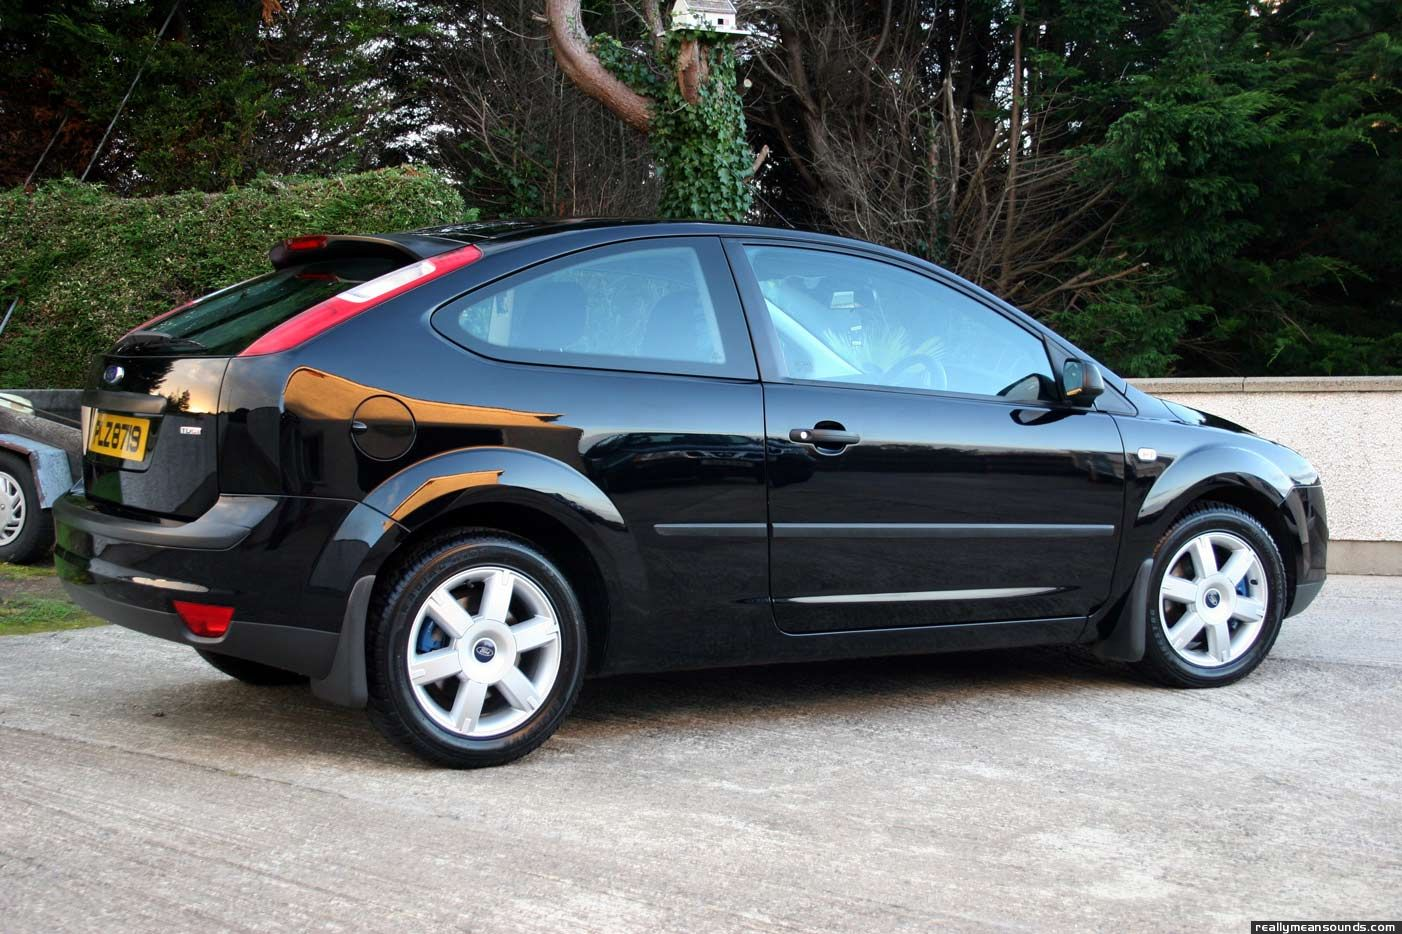 39 s ford focus 1 8 tdci sport 2005 rms garage. Black Bedroom Furniture Sets. Home Design Ideas